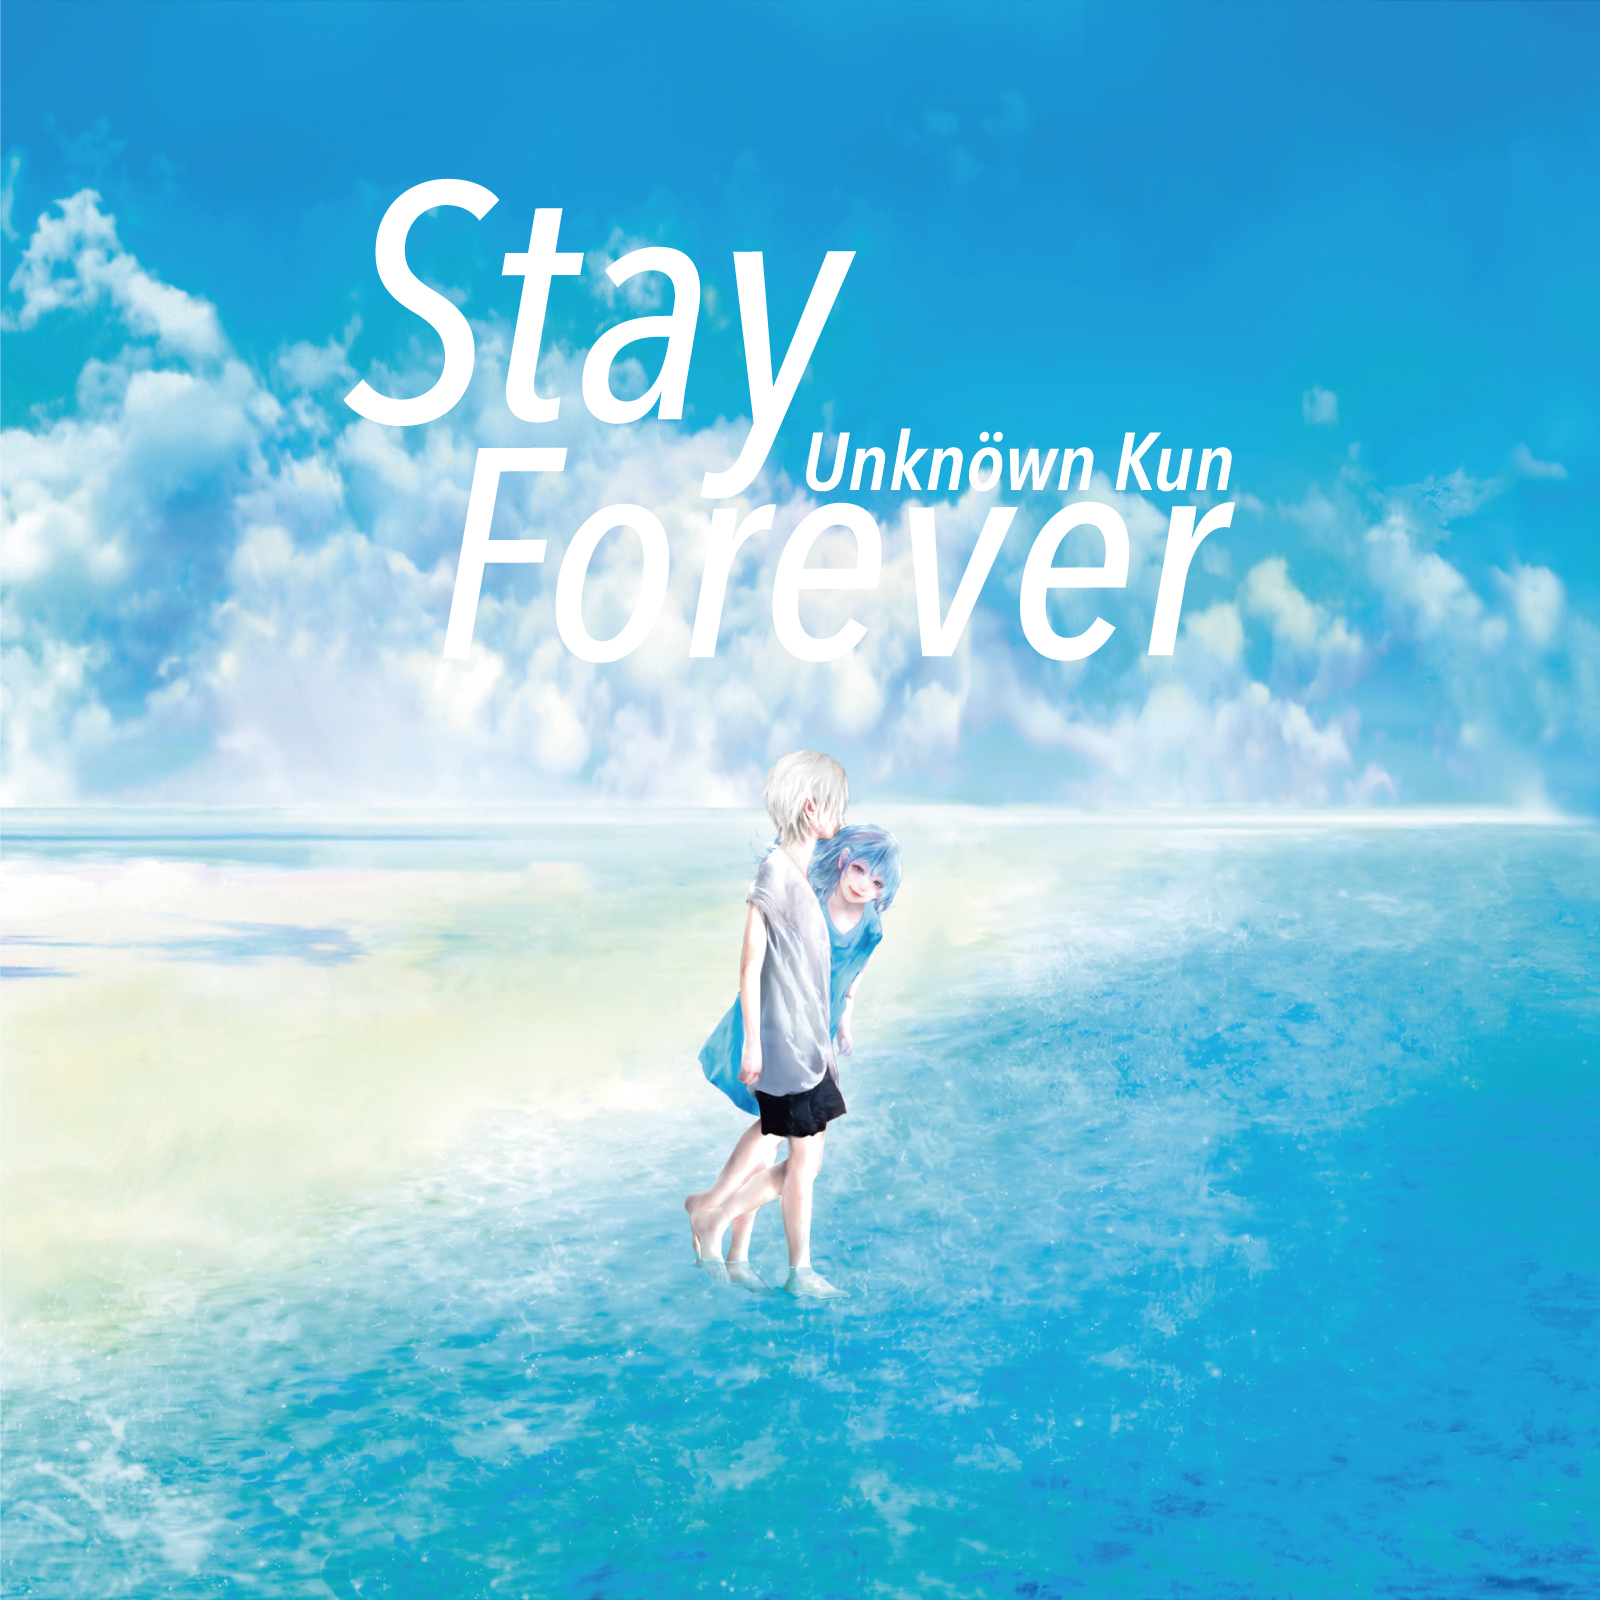 Unknöwn Kun「Stay Forever」